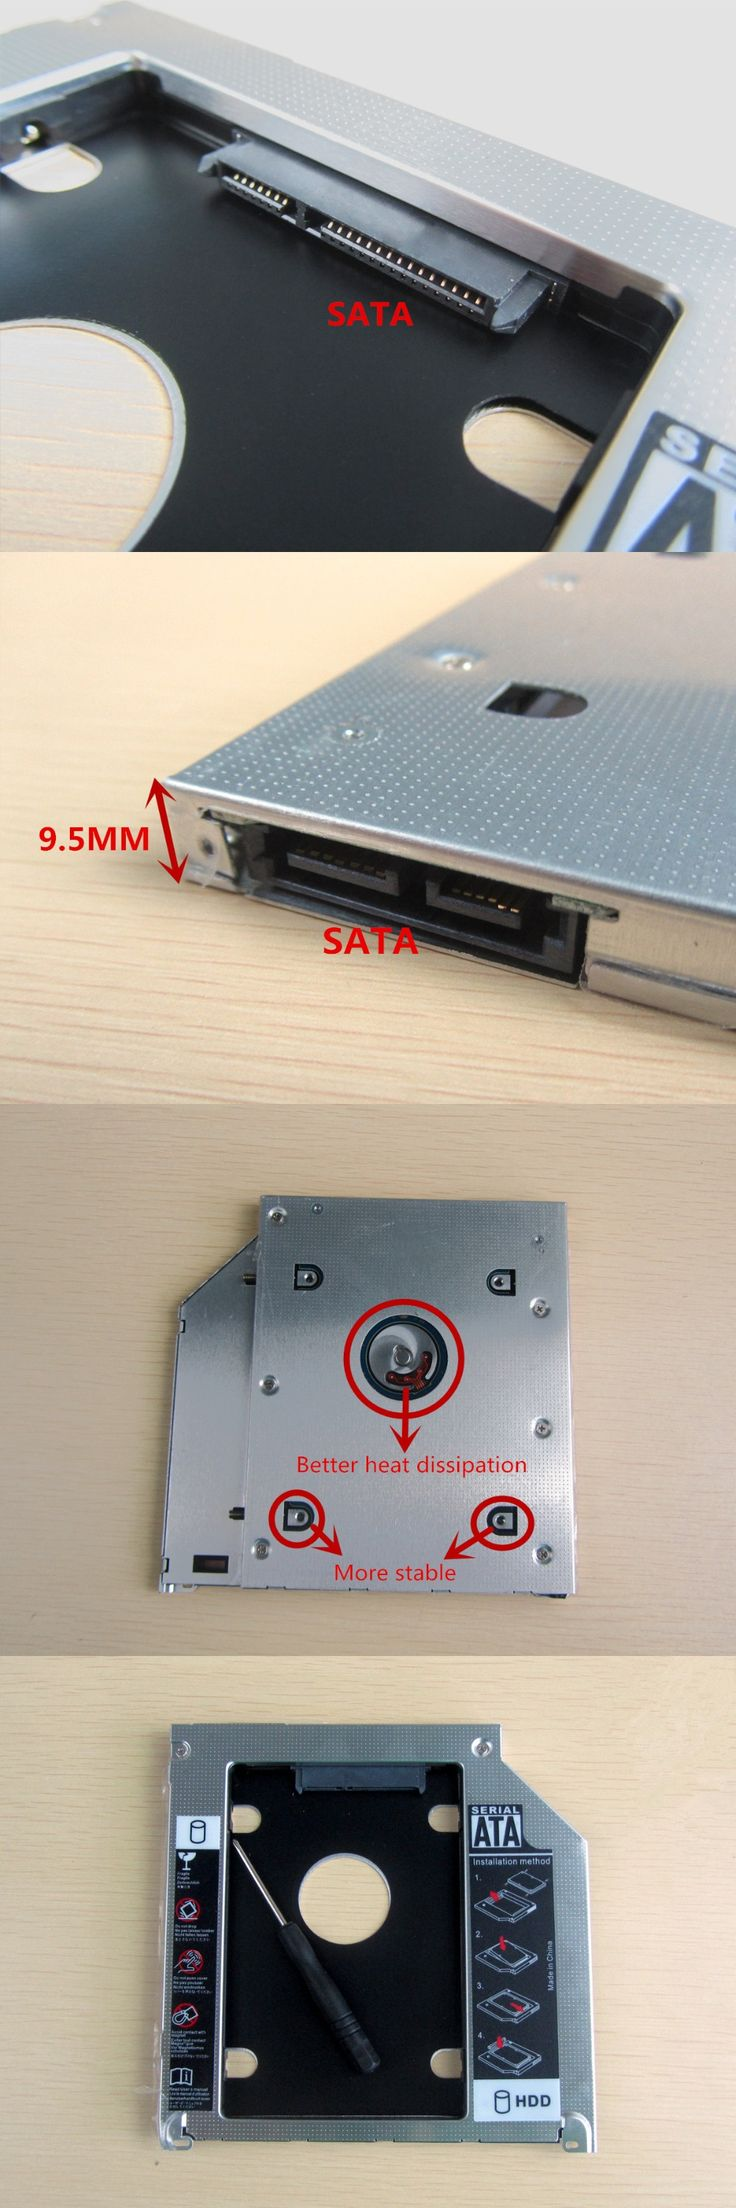 New for Universal For Apple Macbook Pro Optical bay 2nd HDD Hard Drive Caddy SATA 9.5mm Free Shipping